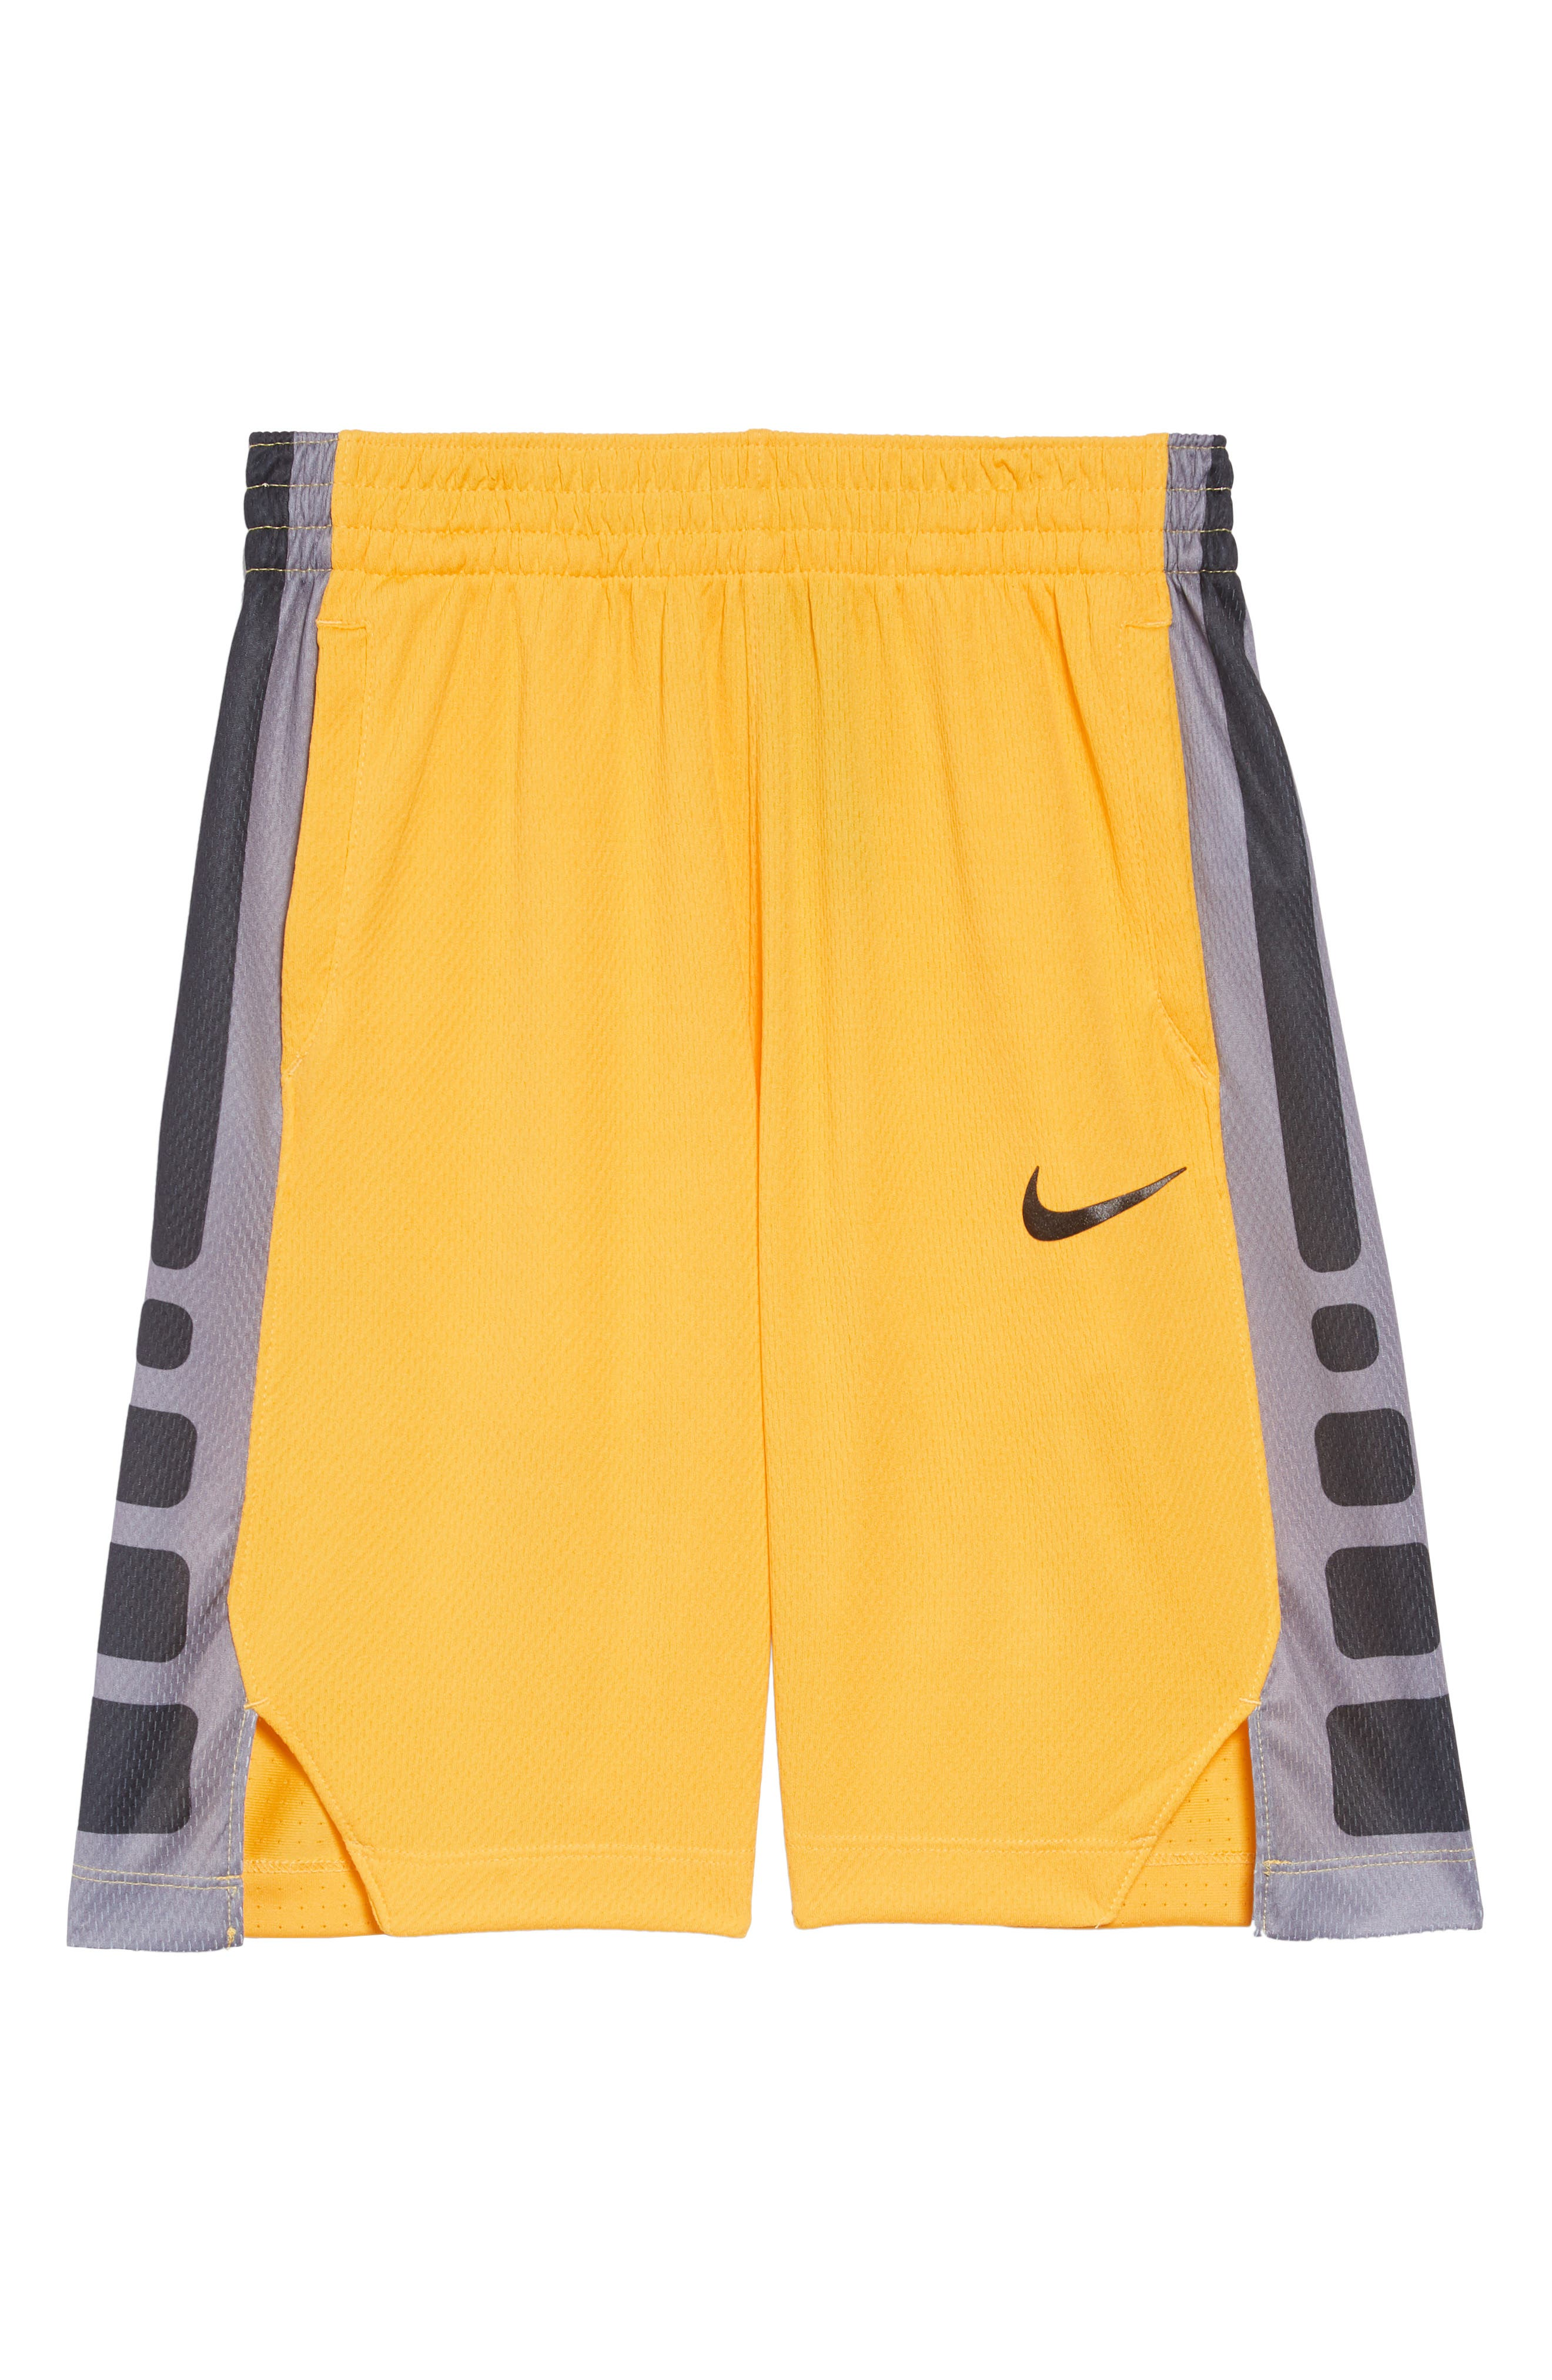 Dry Elite Basketball Shorts,                             Main thumbnail 23, color,